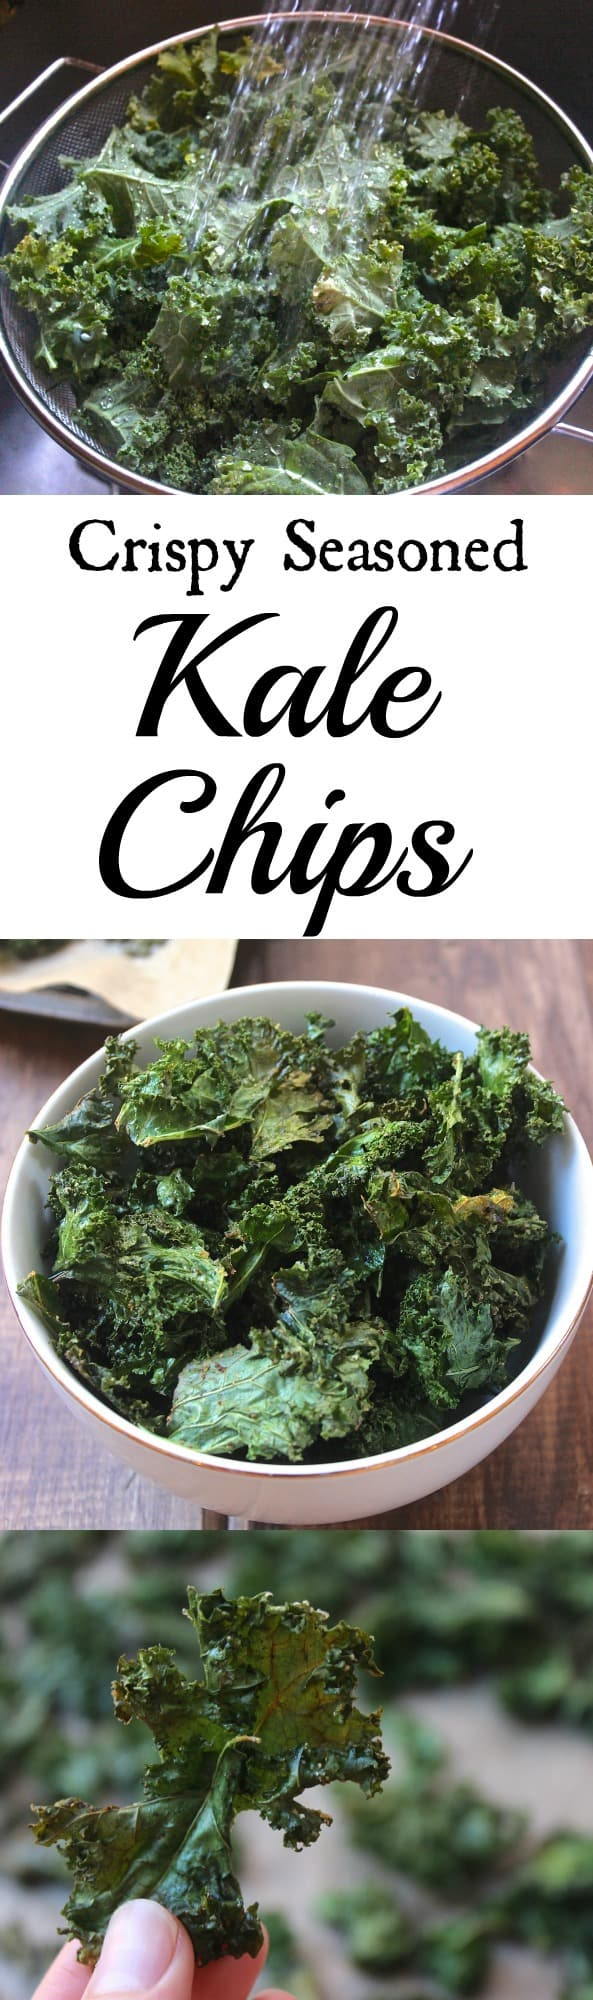 4 tips for perfectly crispy kale chips!